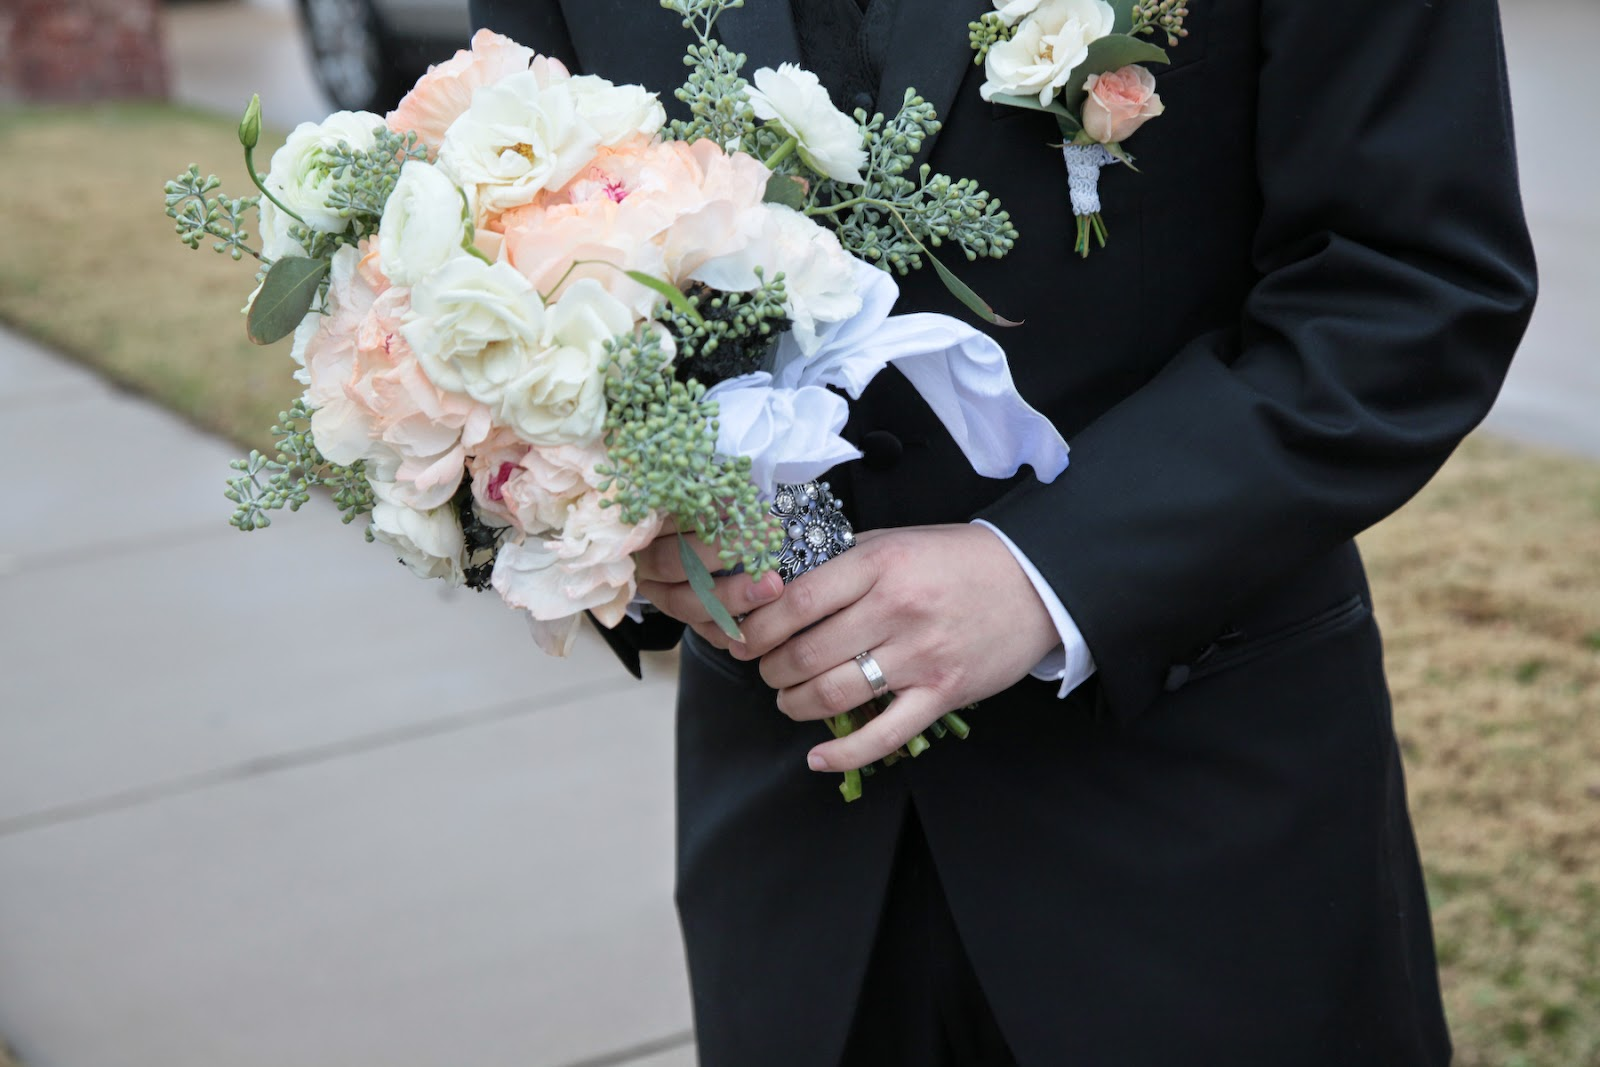 The Blooming Bride, DFW, Fort Worth, Texas, Wedding Flowers, bouquet